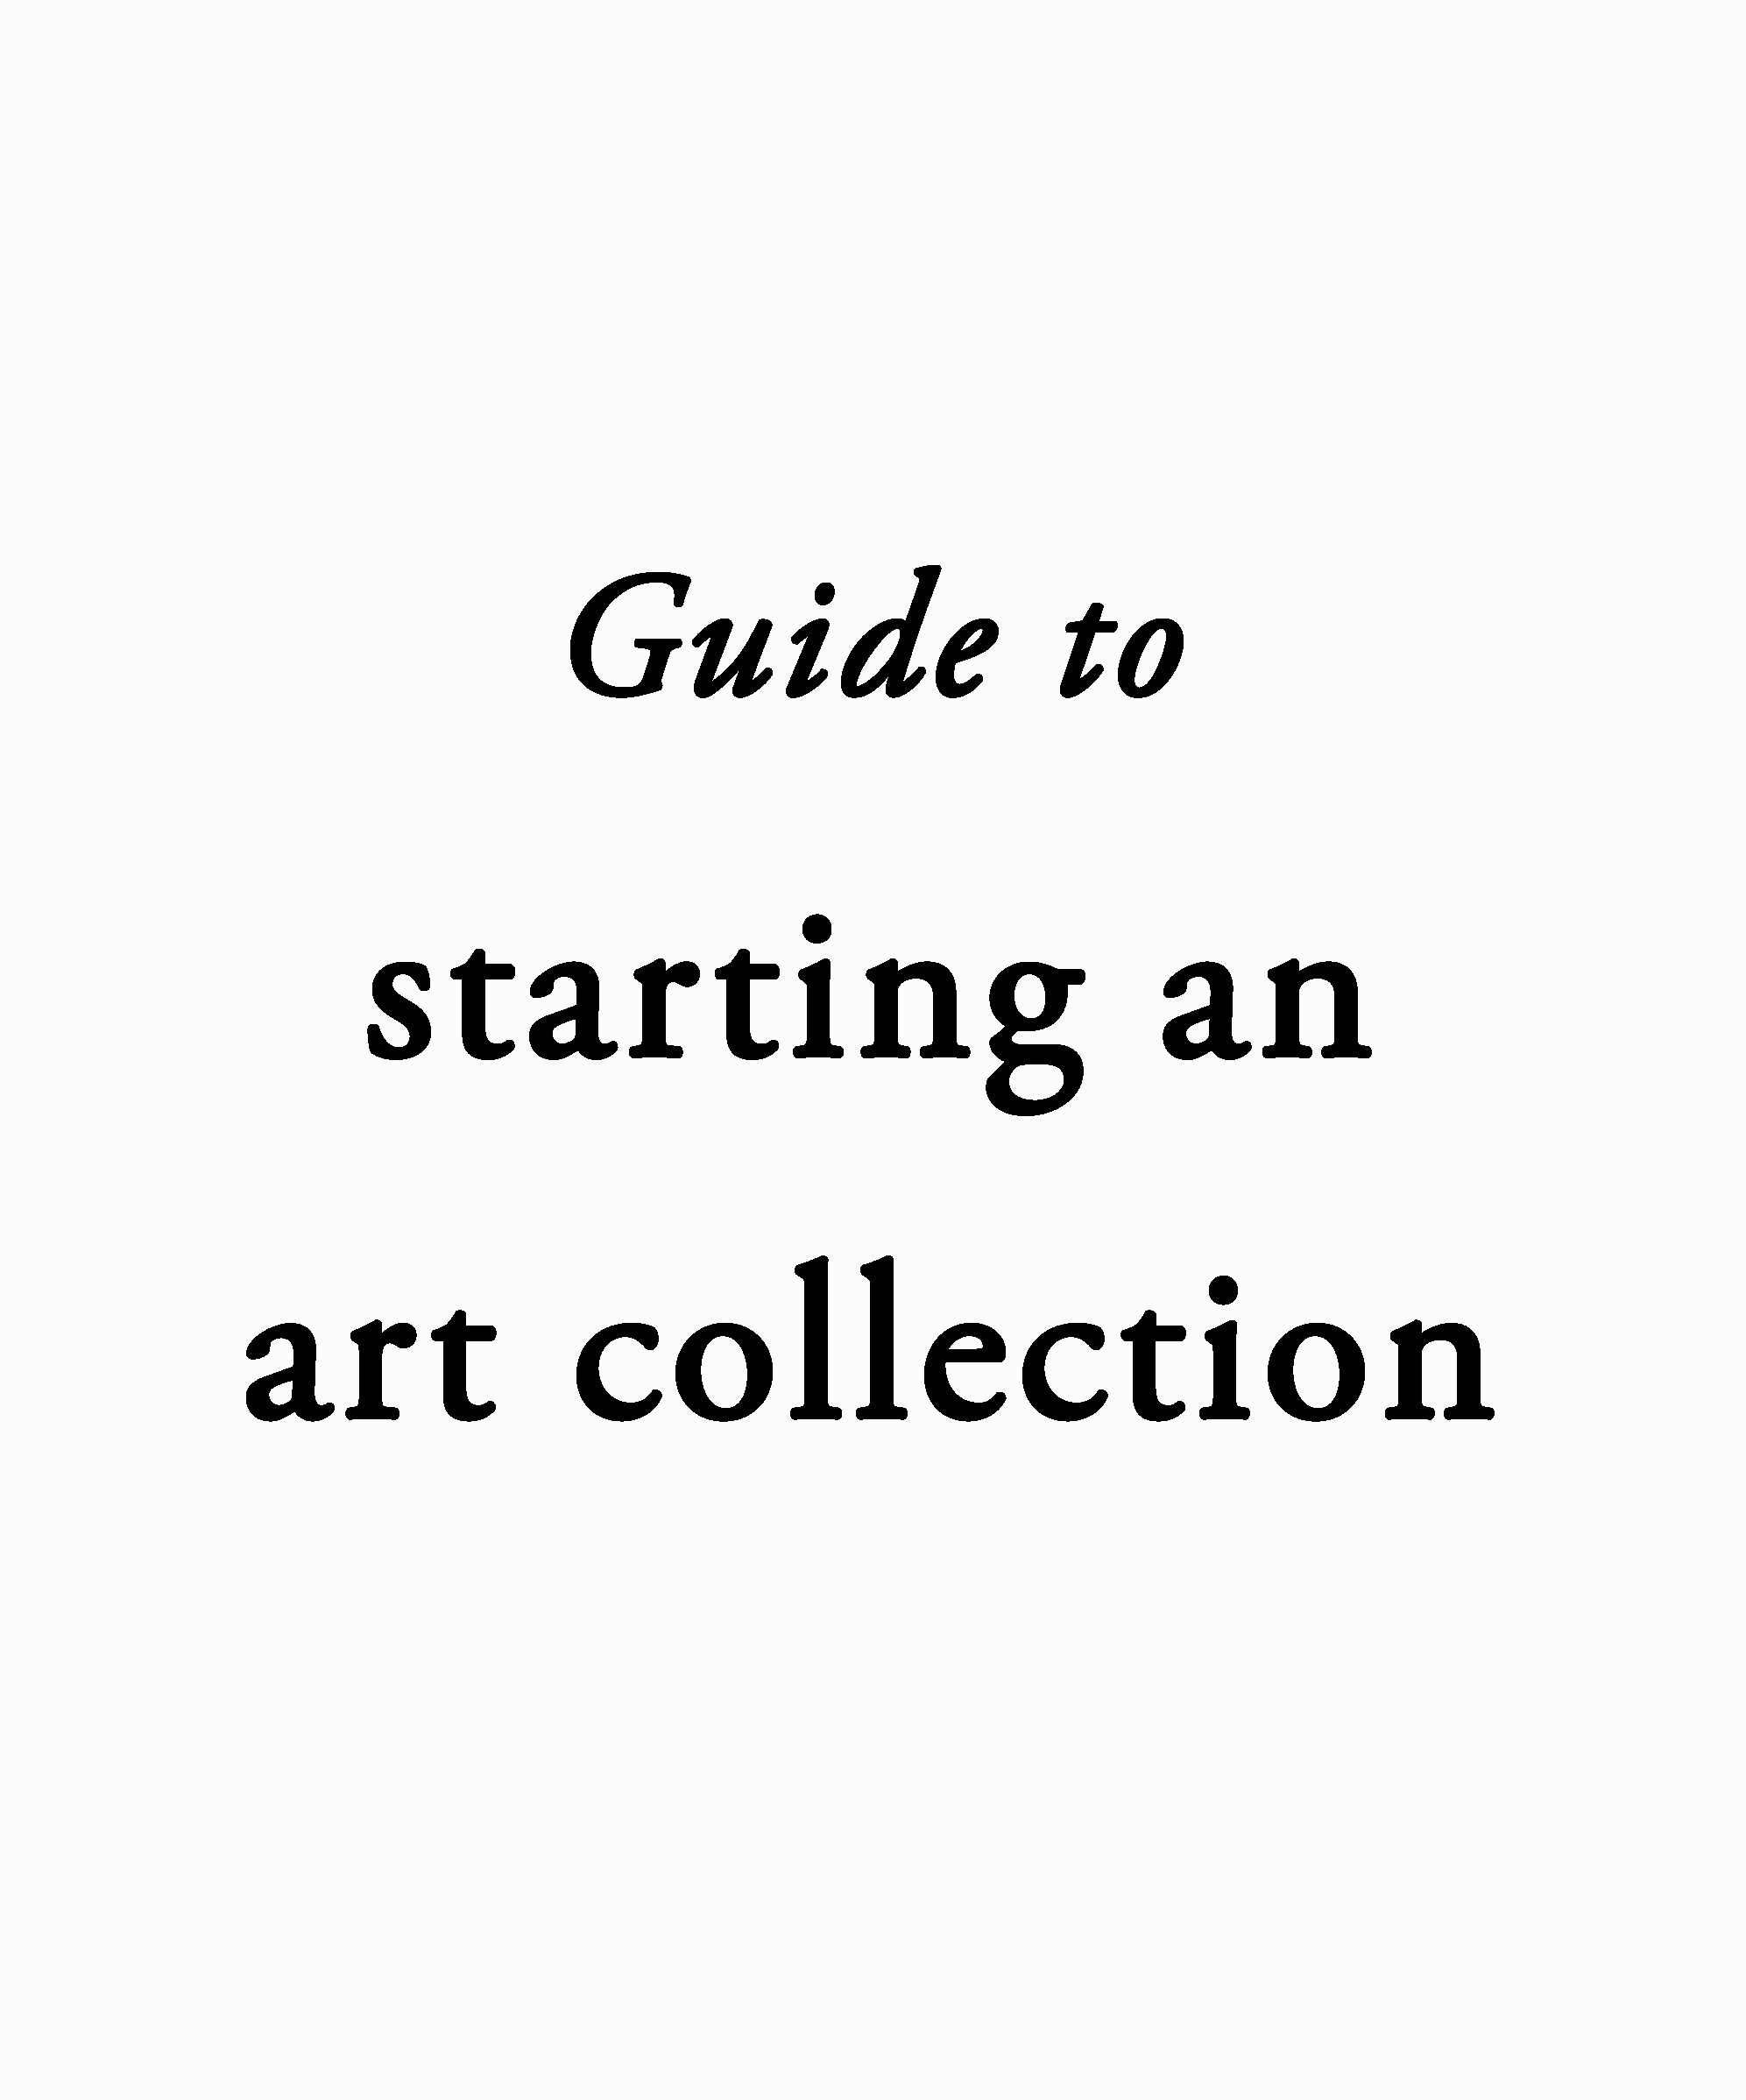 start art collection.jpg